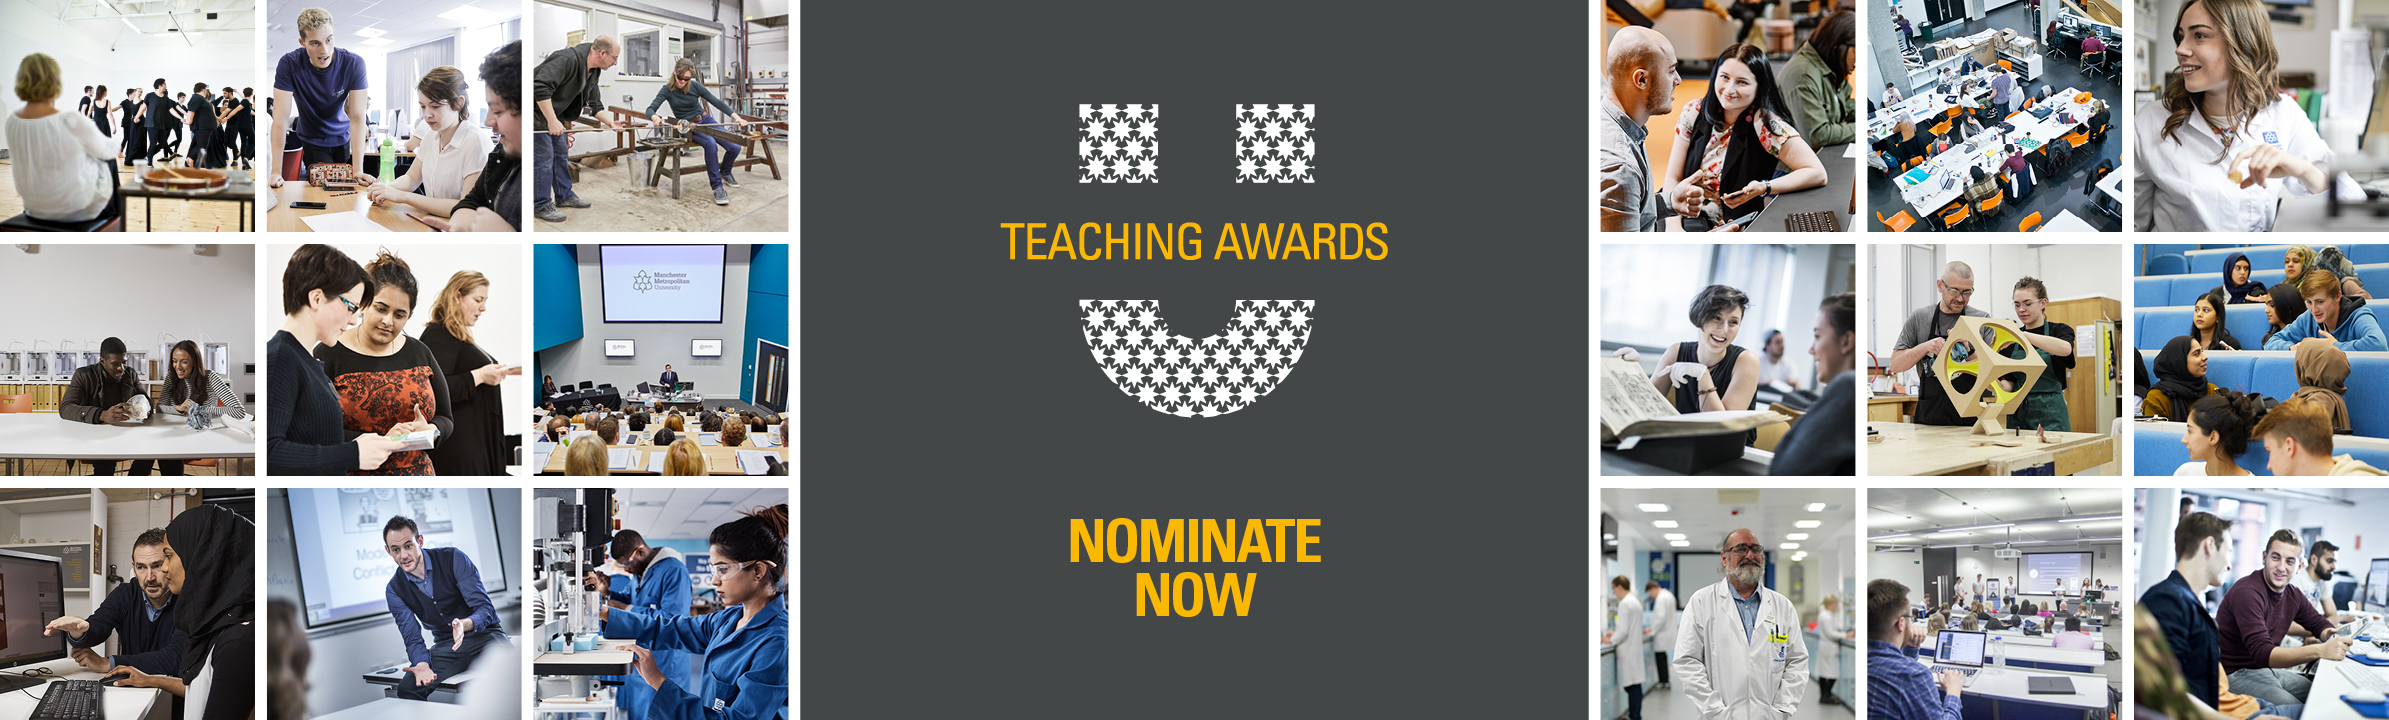 Teaching Awards banner